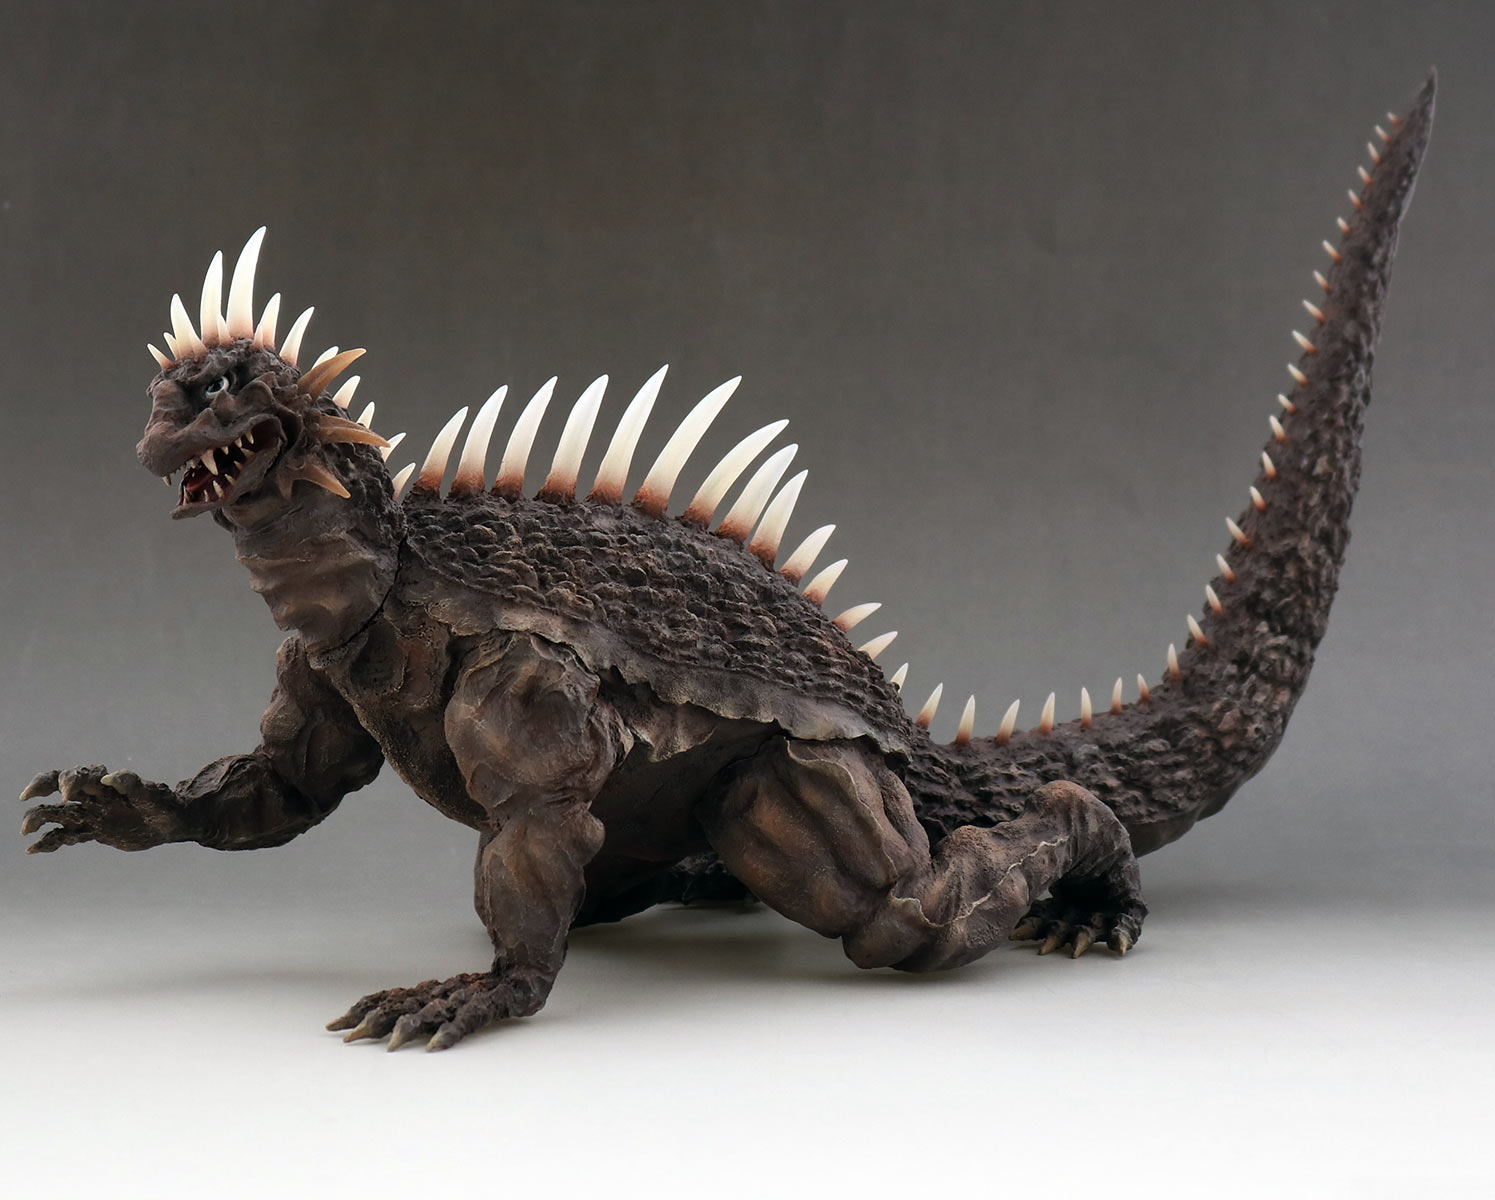 30cm Series Favorite Sculptors Line Varan 1958 vinyl figure by X-Plus.